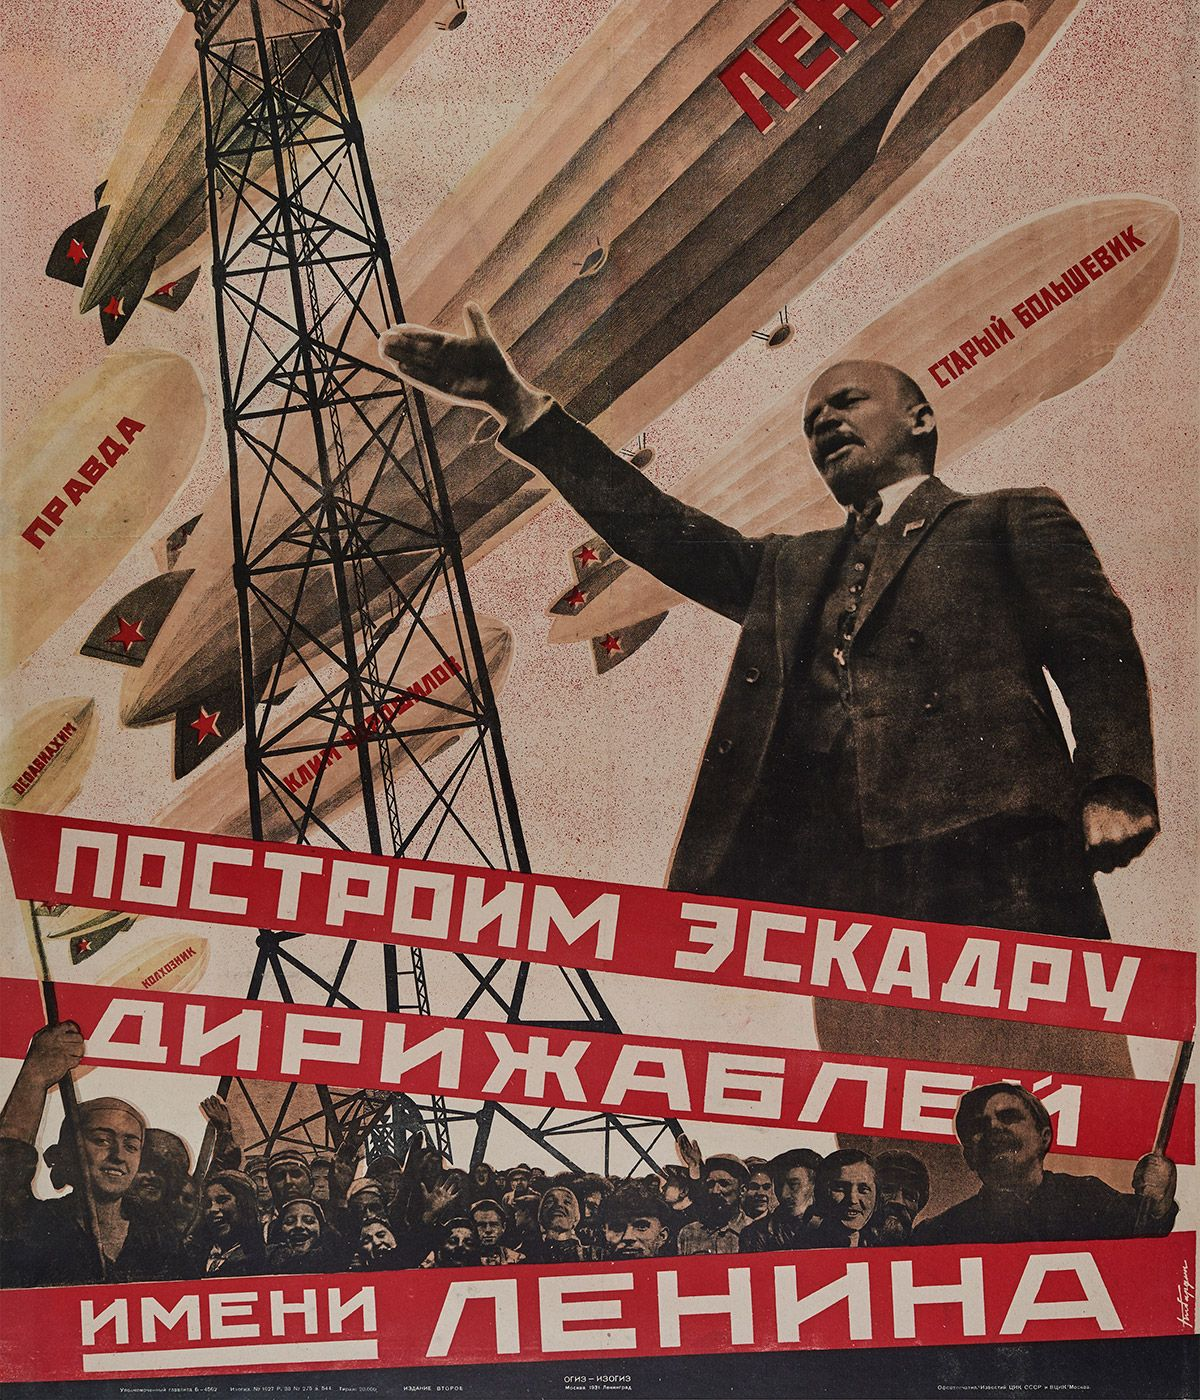 1200x1400 How graphic design shaped the Russian Revolution | Wallpaper*